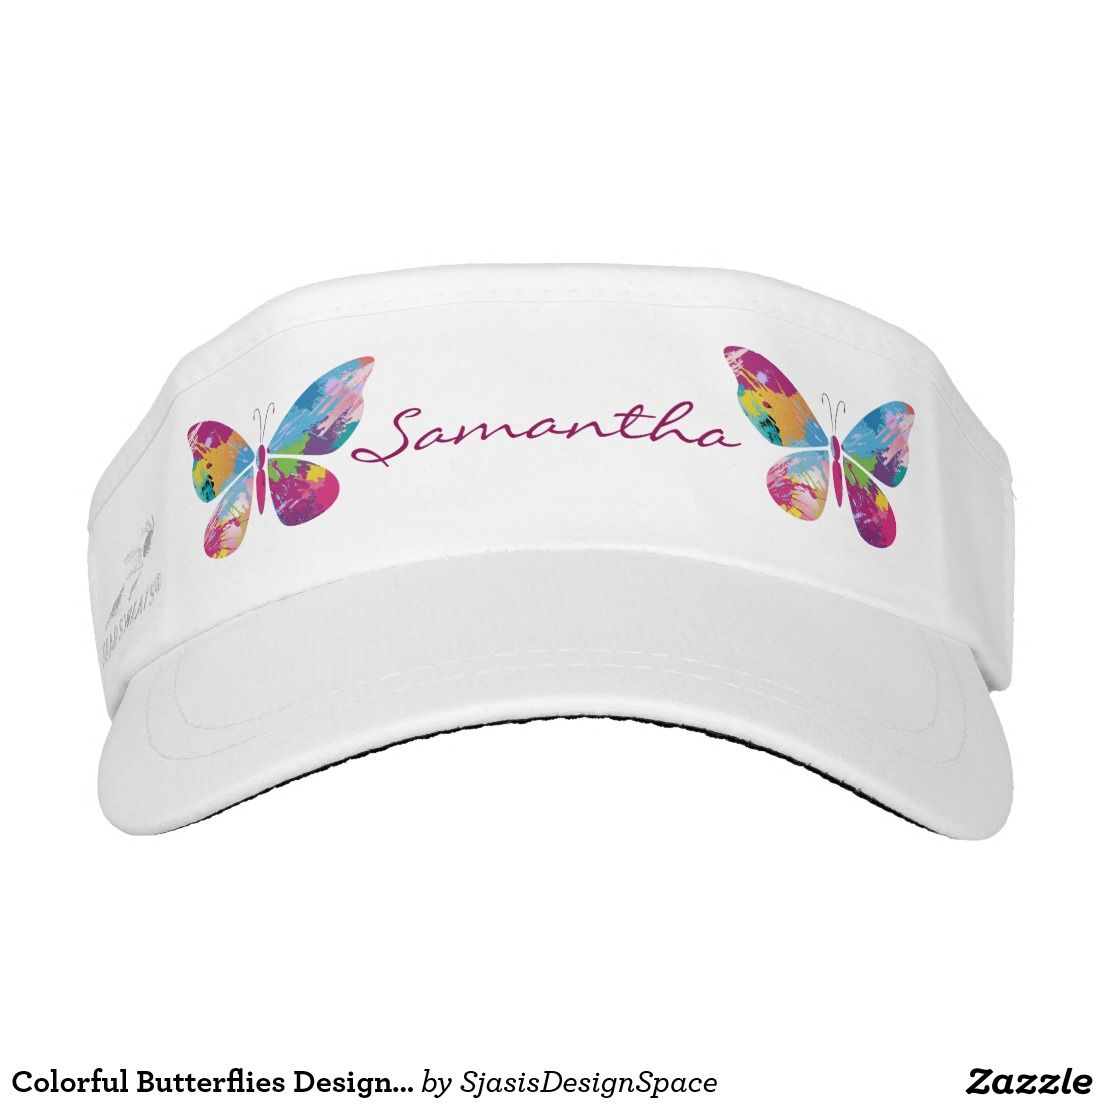 aab460c969f Colorful Butterflies Design Sun Visor Hat Headsweats Visors